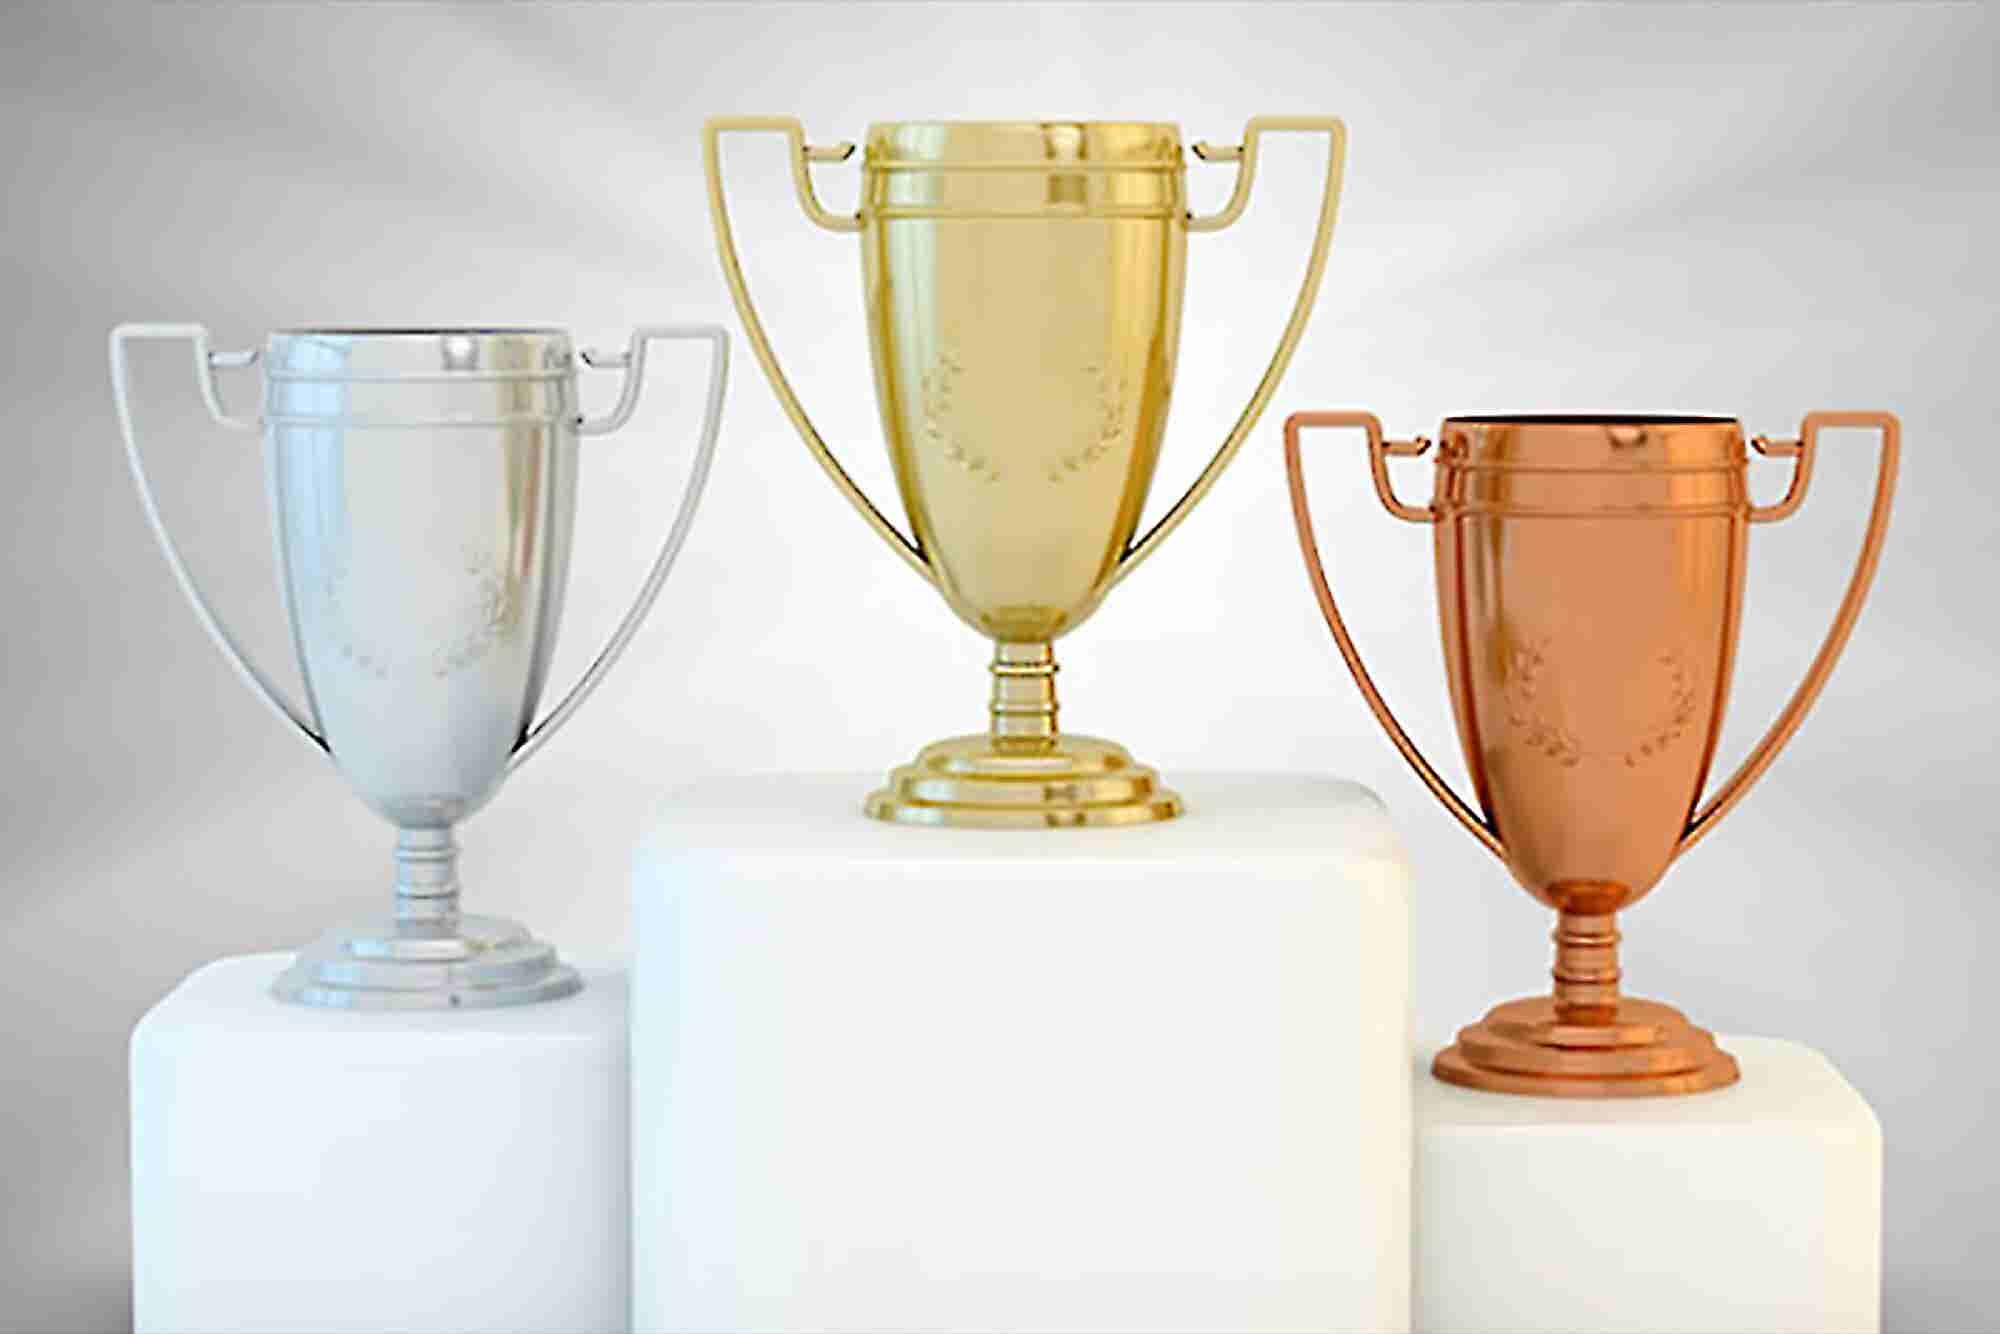 Top 3 Candidates to Lead the U.S. Small Business Administration